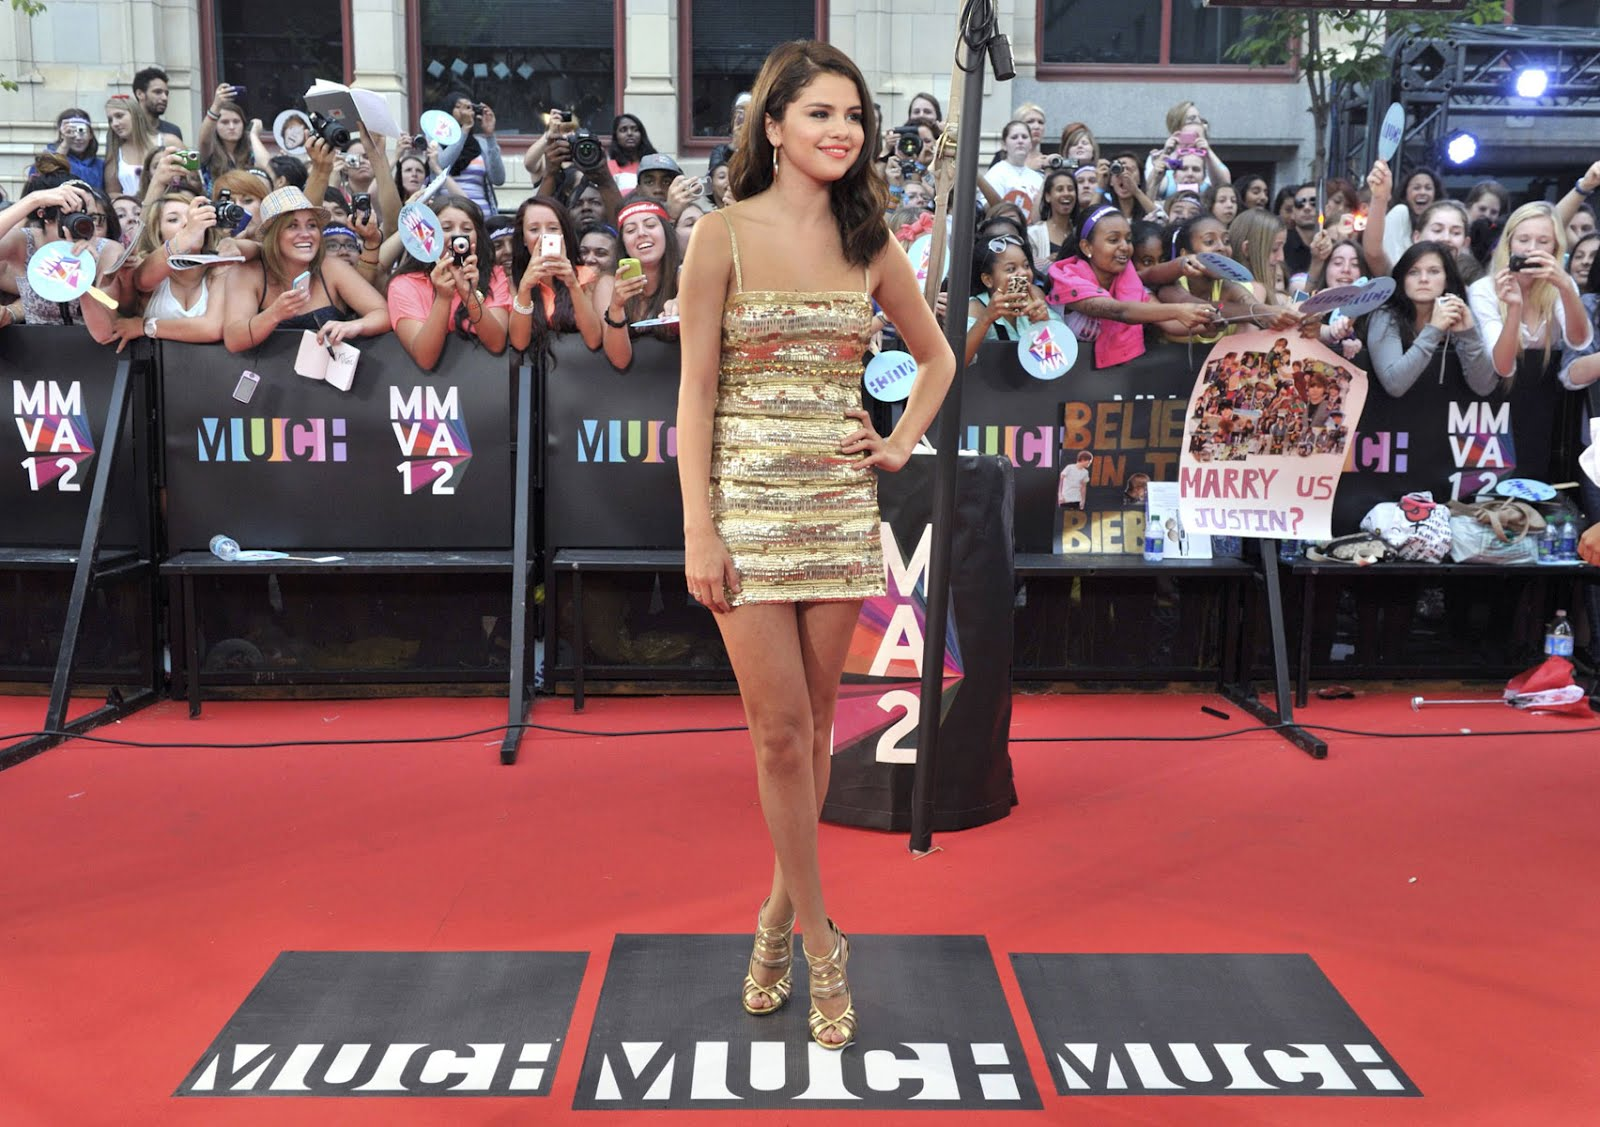 http://1.bp.blogspot.com/-mWeJF0GBD7I/T-NU3H1fRwI/AAAAAAAAHV0/vDS_cbjYriU/s1600/SELENA-GOMEZ-at-2012-MuchMusic-Video-Awards-in-Toronto-7.jpg